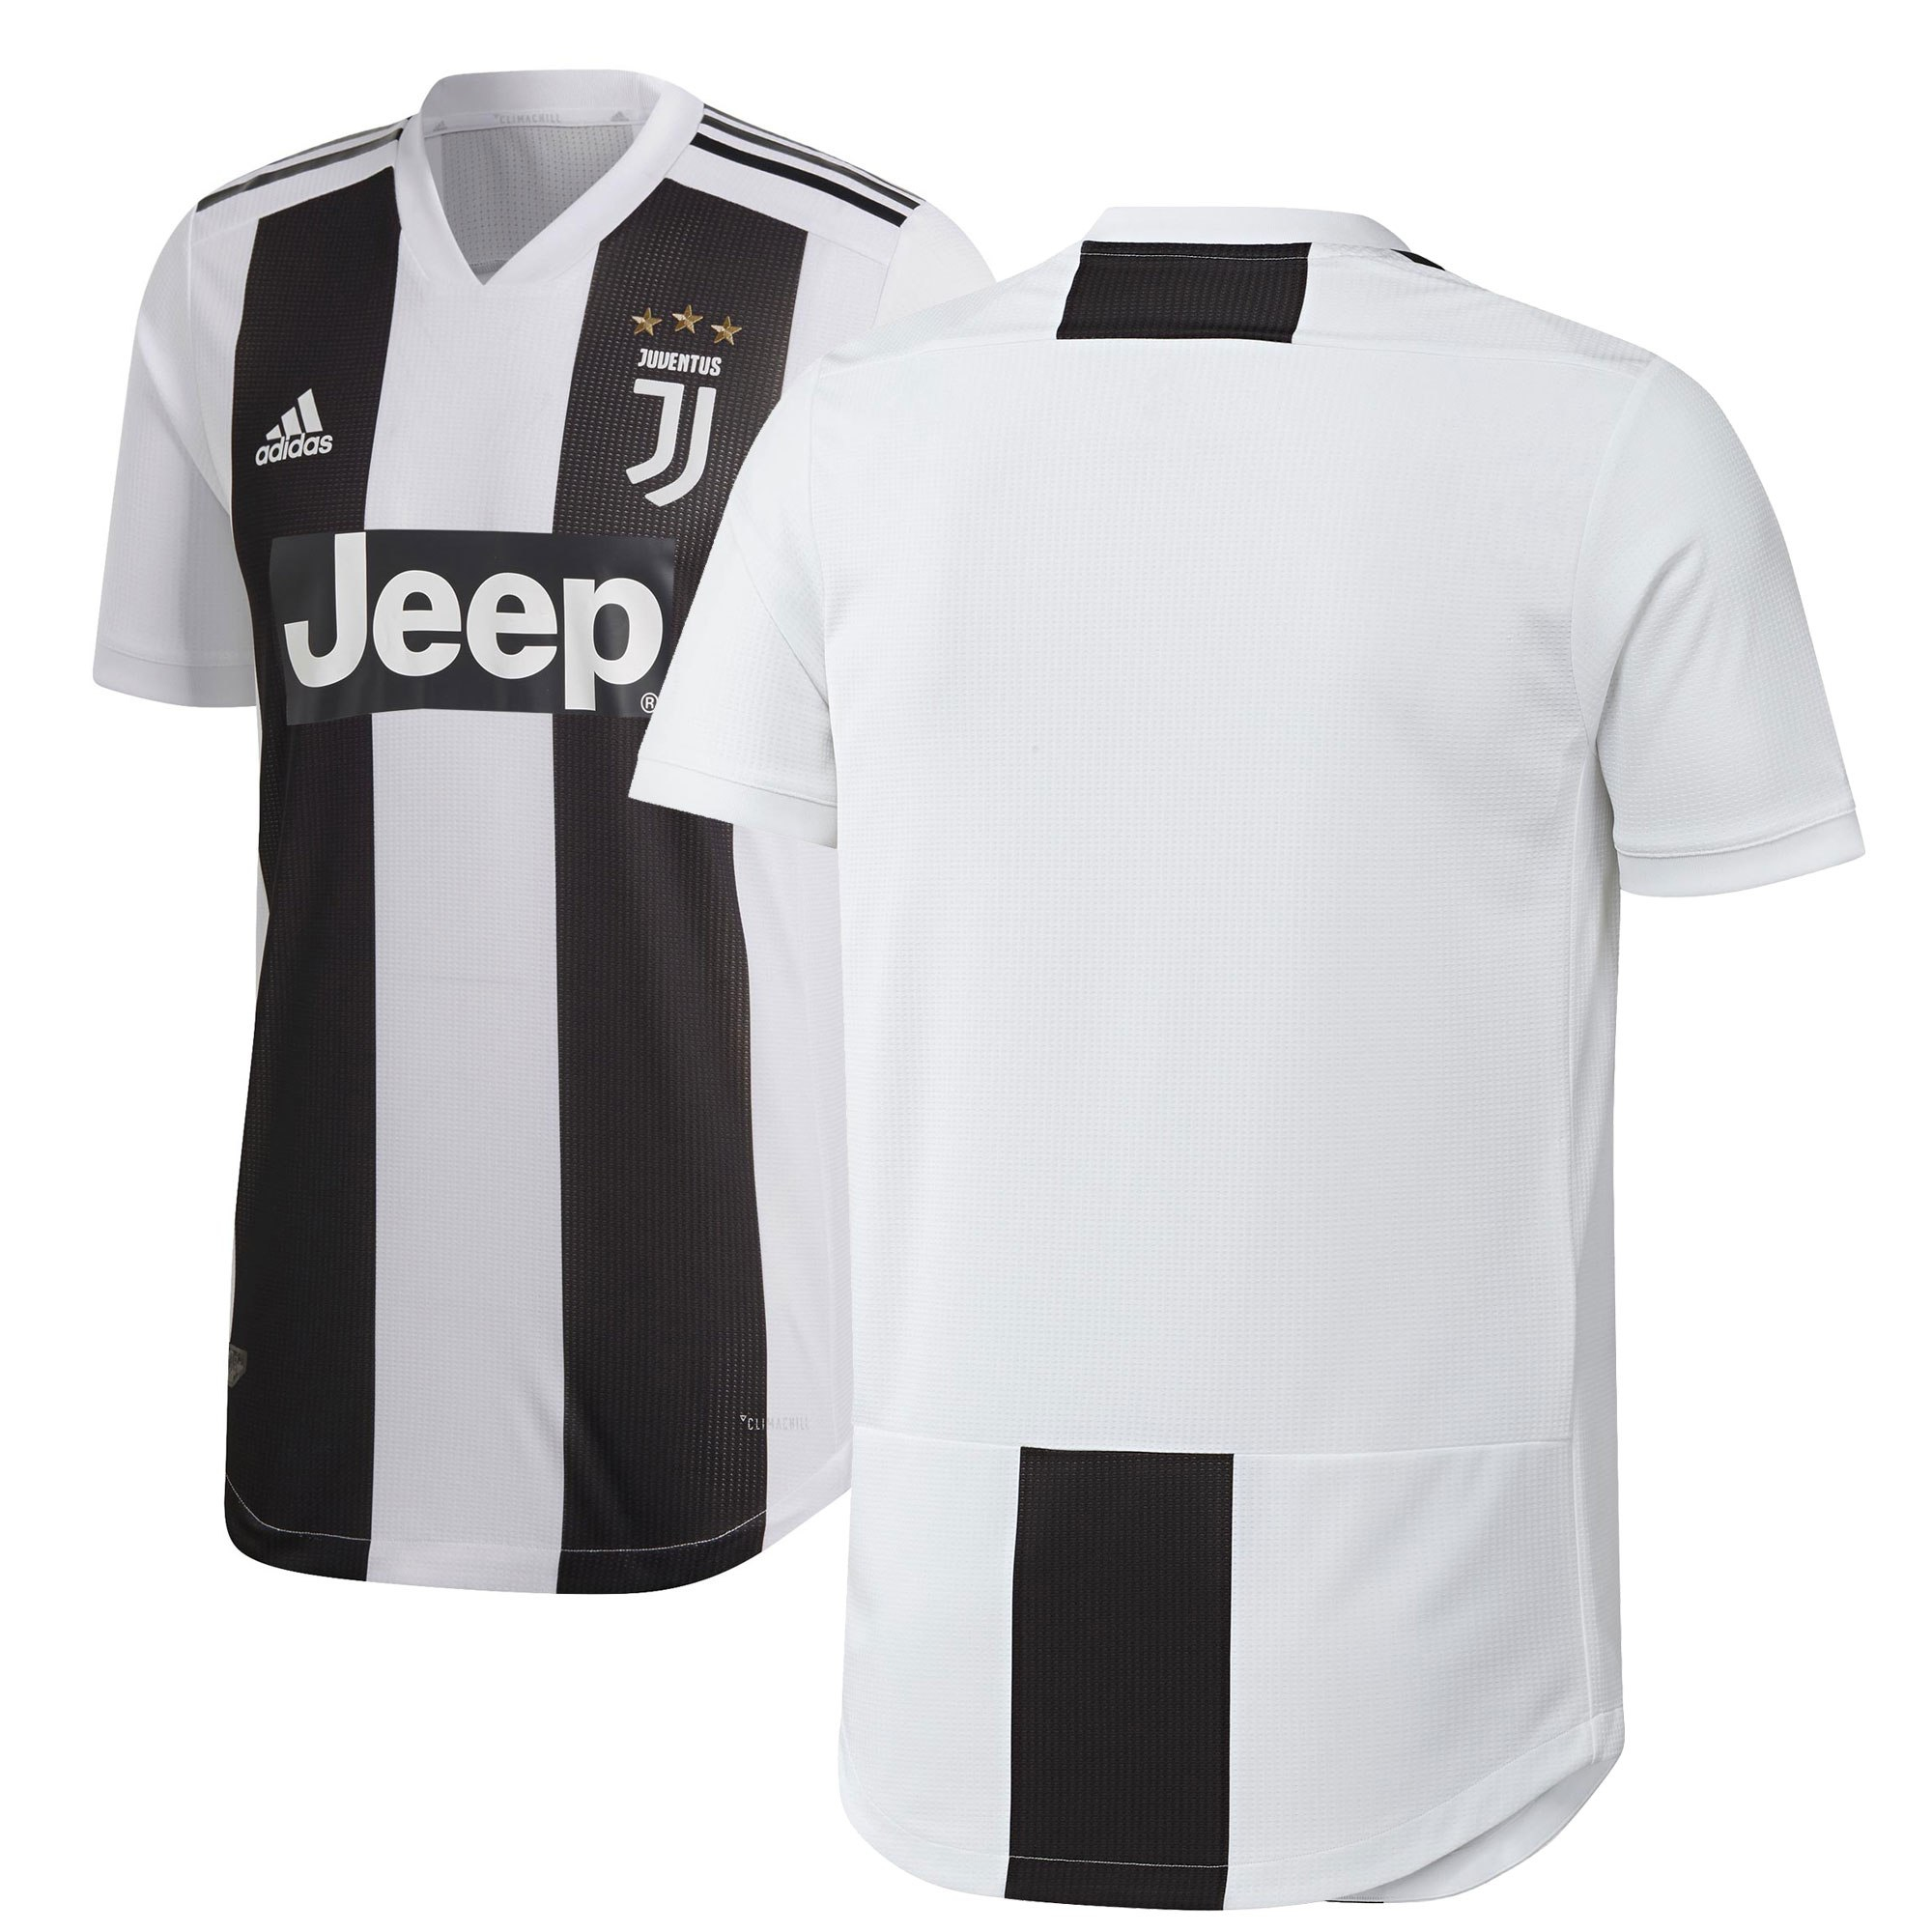 cheaper c59f8 2e273 Jersey - Juventus Home Jersey 2018/2019 Football Jersey Online Malaysia |  Jers